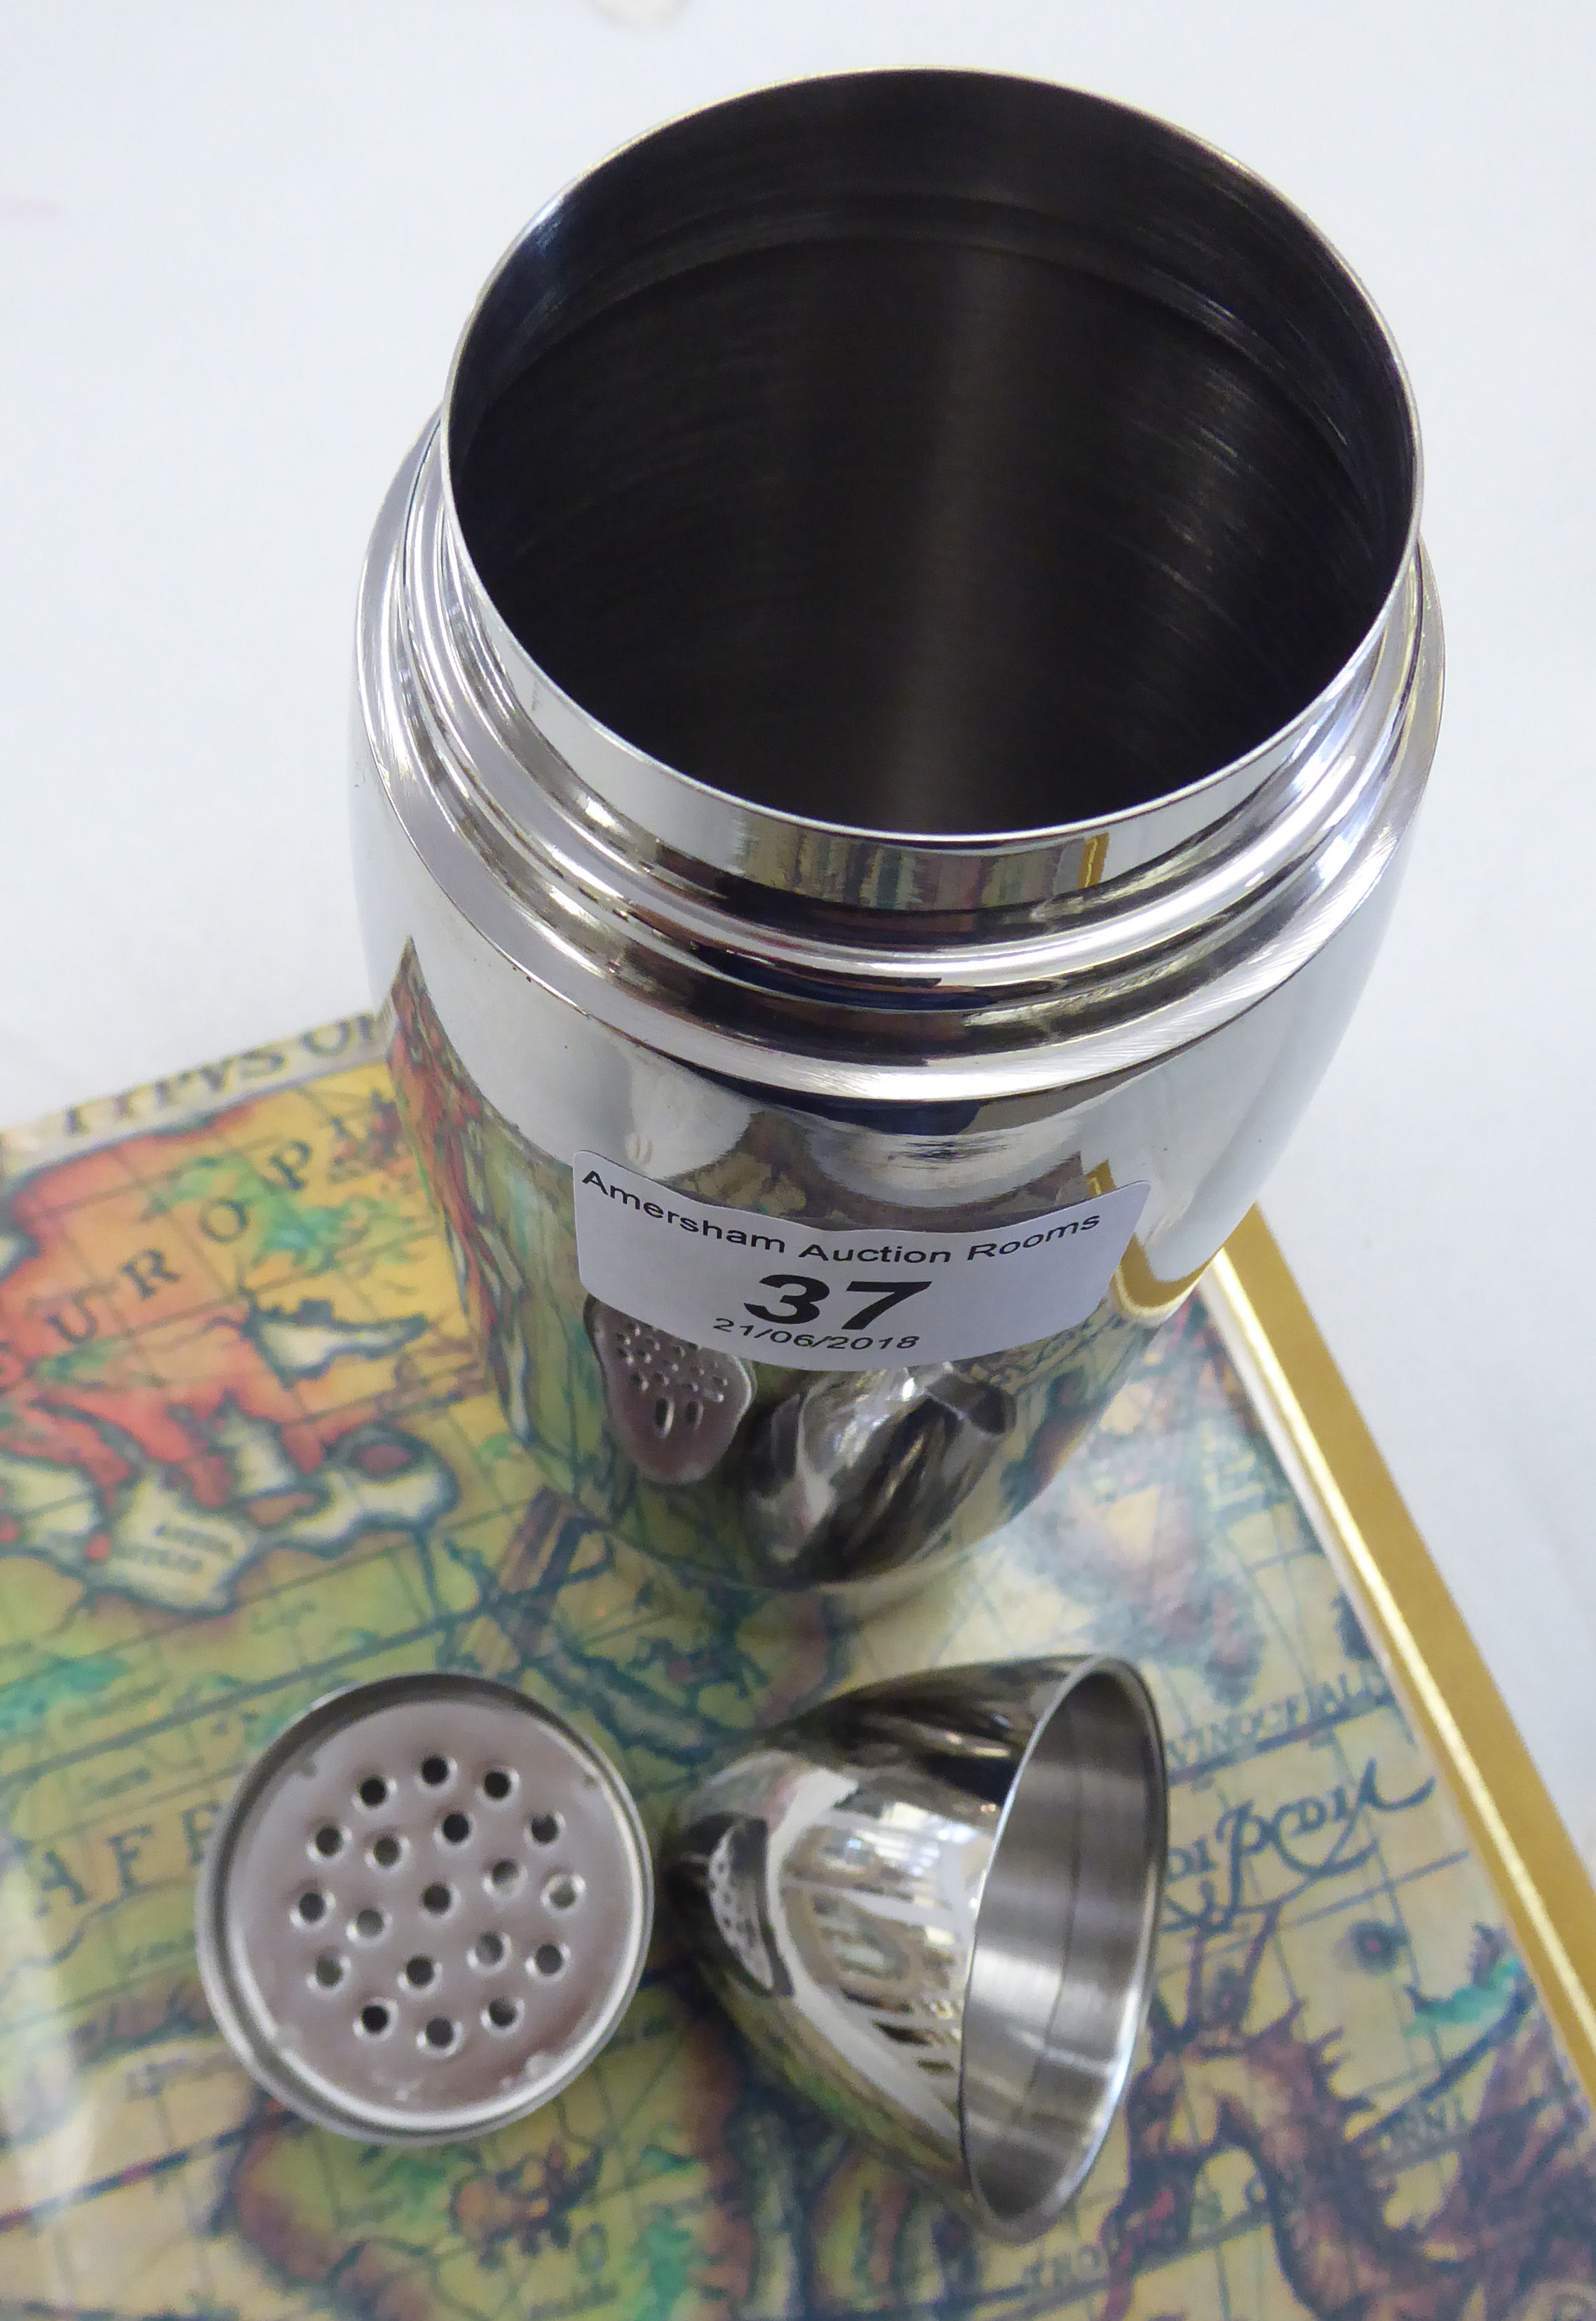 Lot 37 - A novelty stainless steel cocktail shaker,